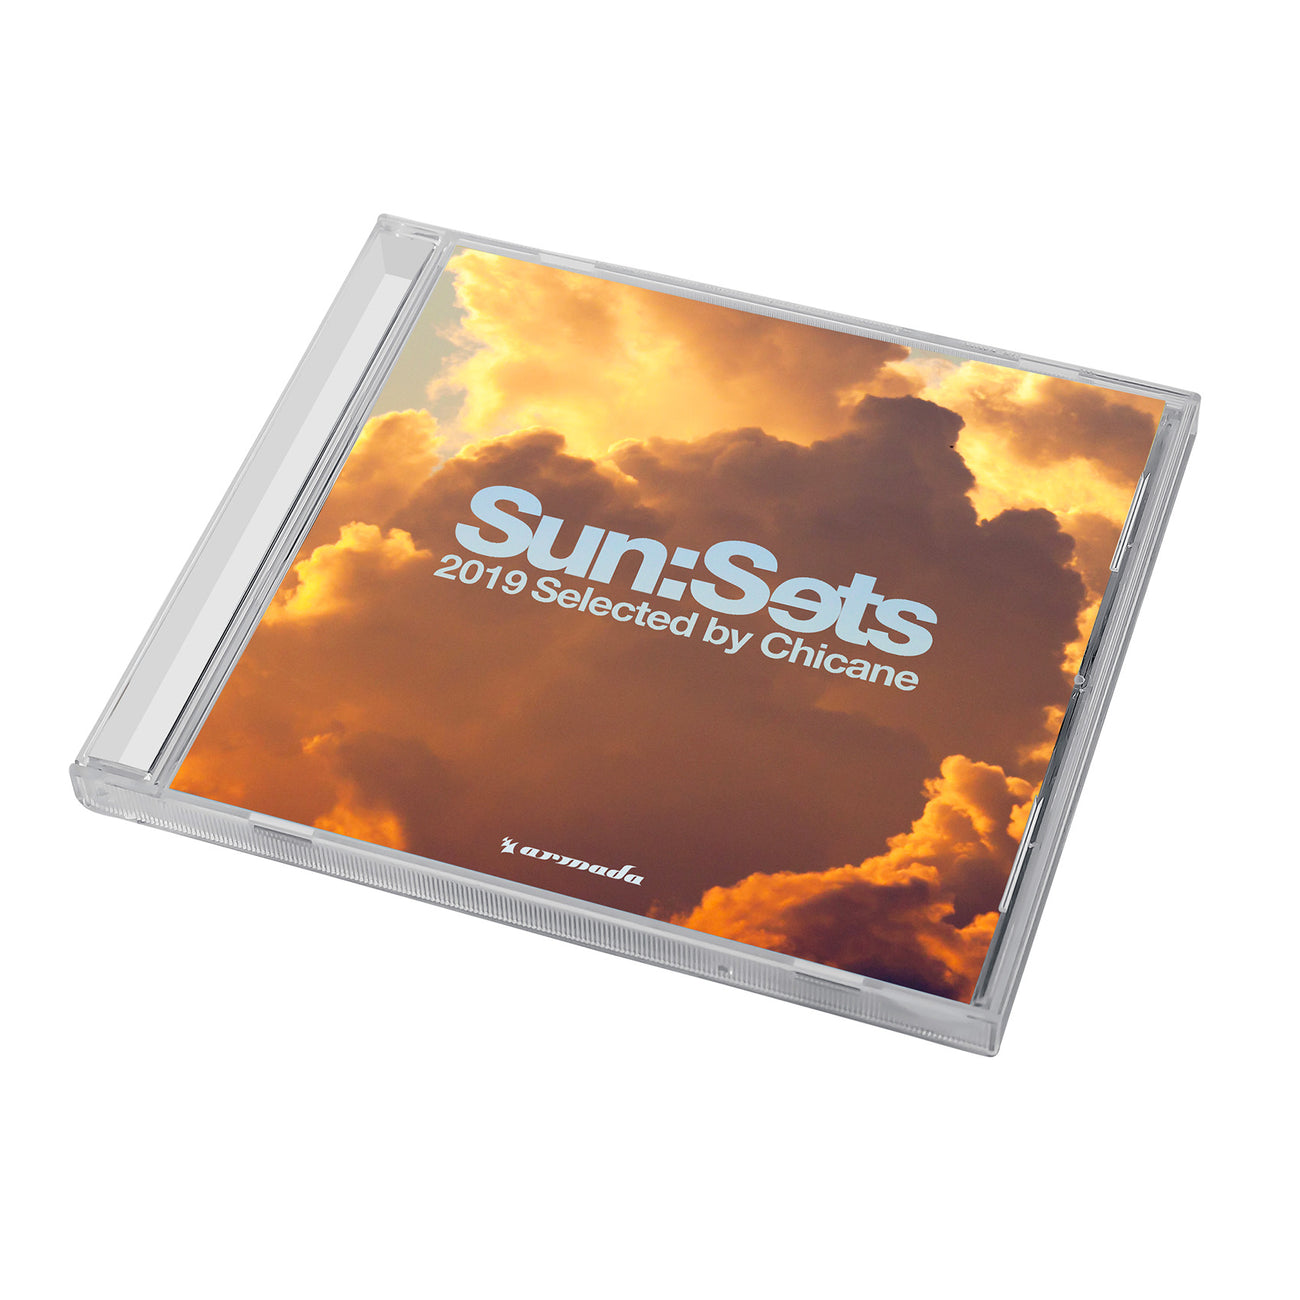 Chicane - Sunsets 2019 2CD